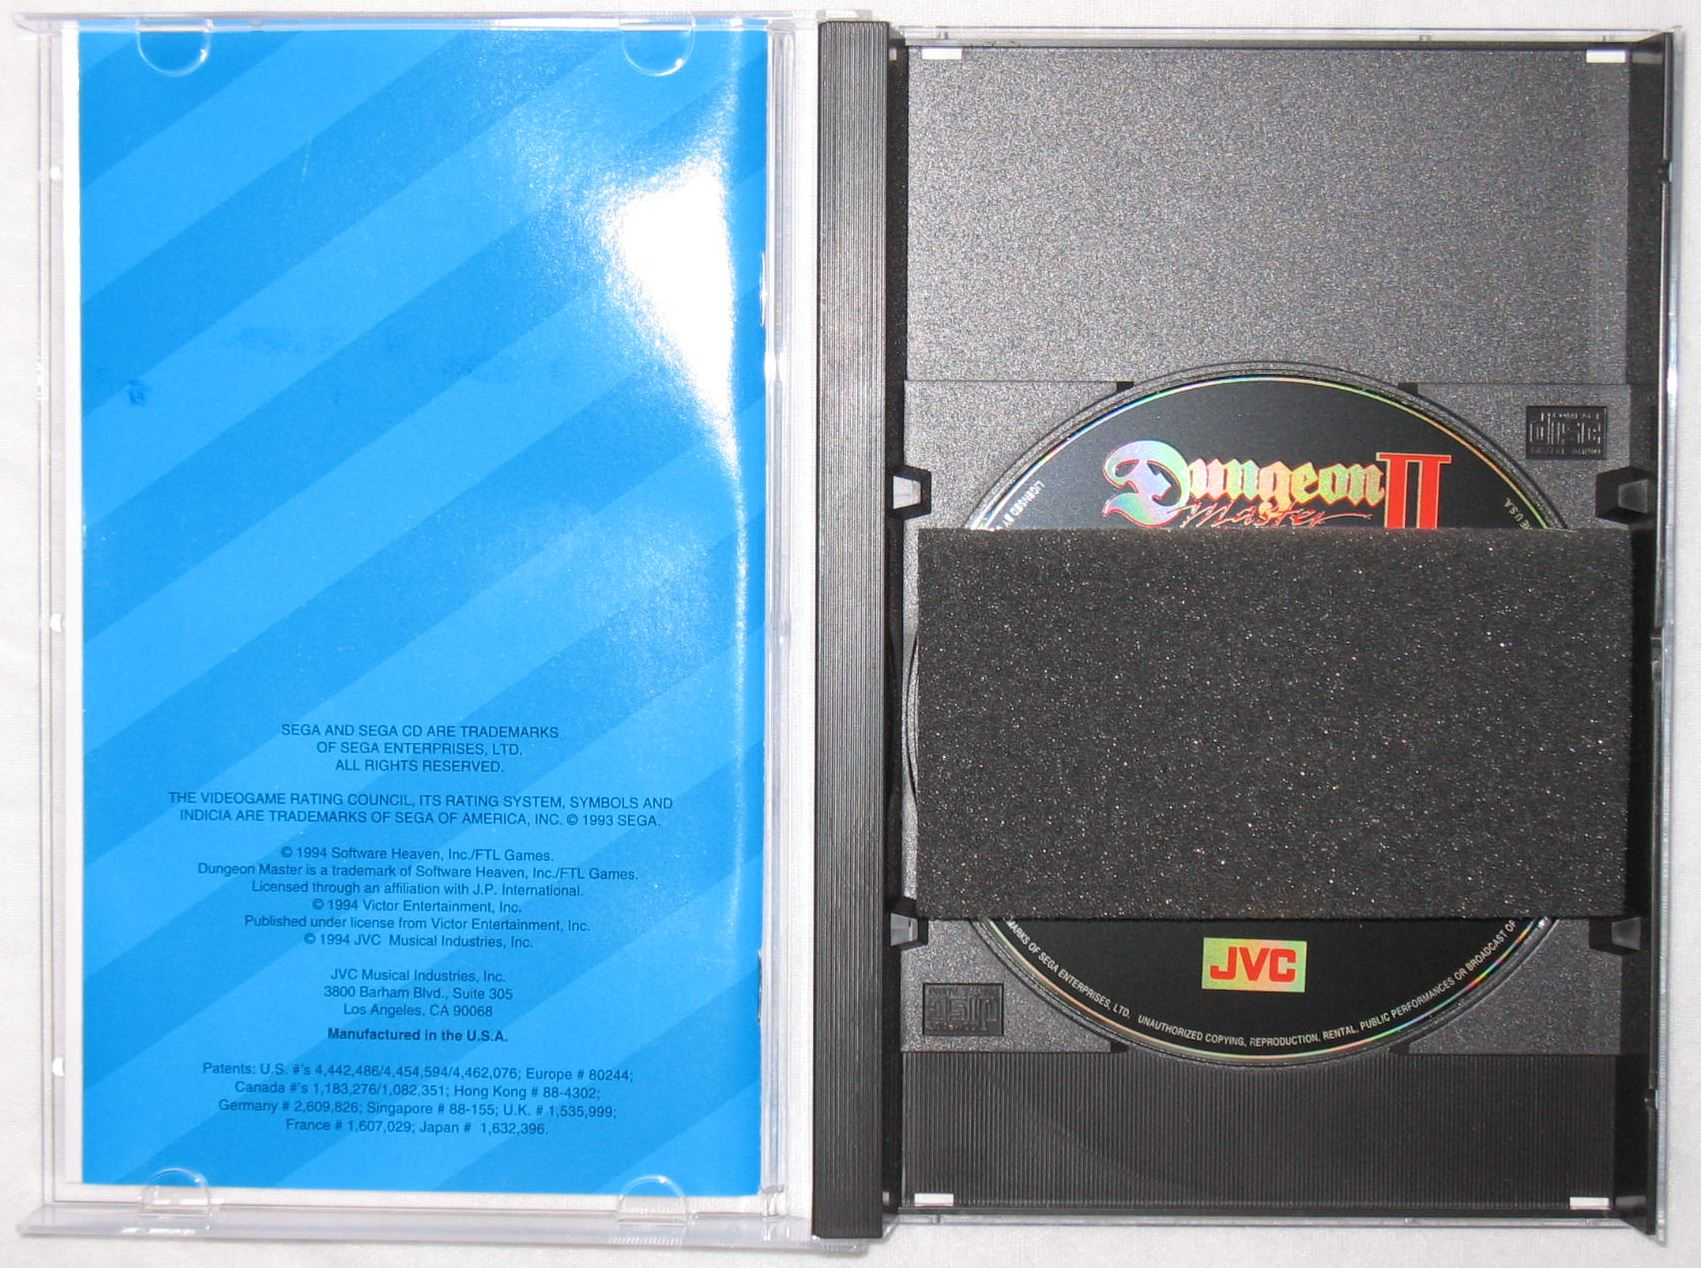 Game - Dungeon Master II - US - Sega CD - Box - Inside - Photo